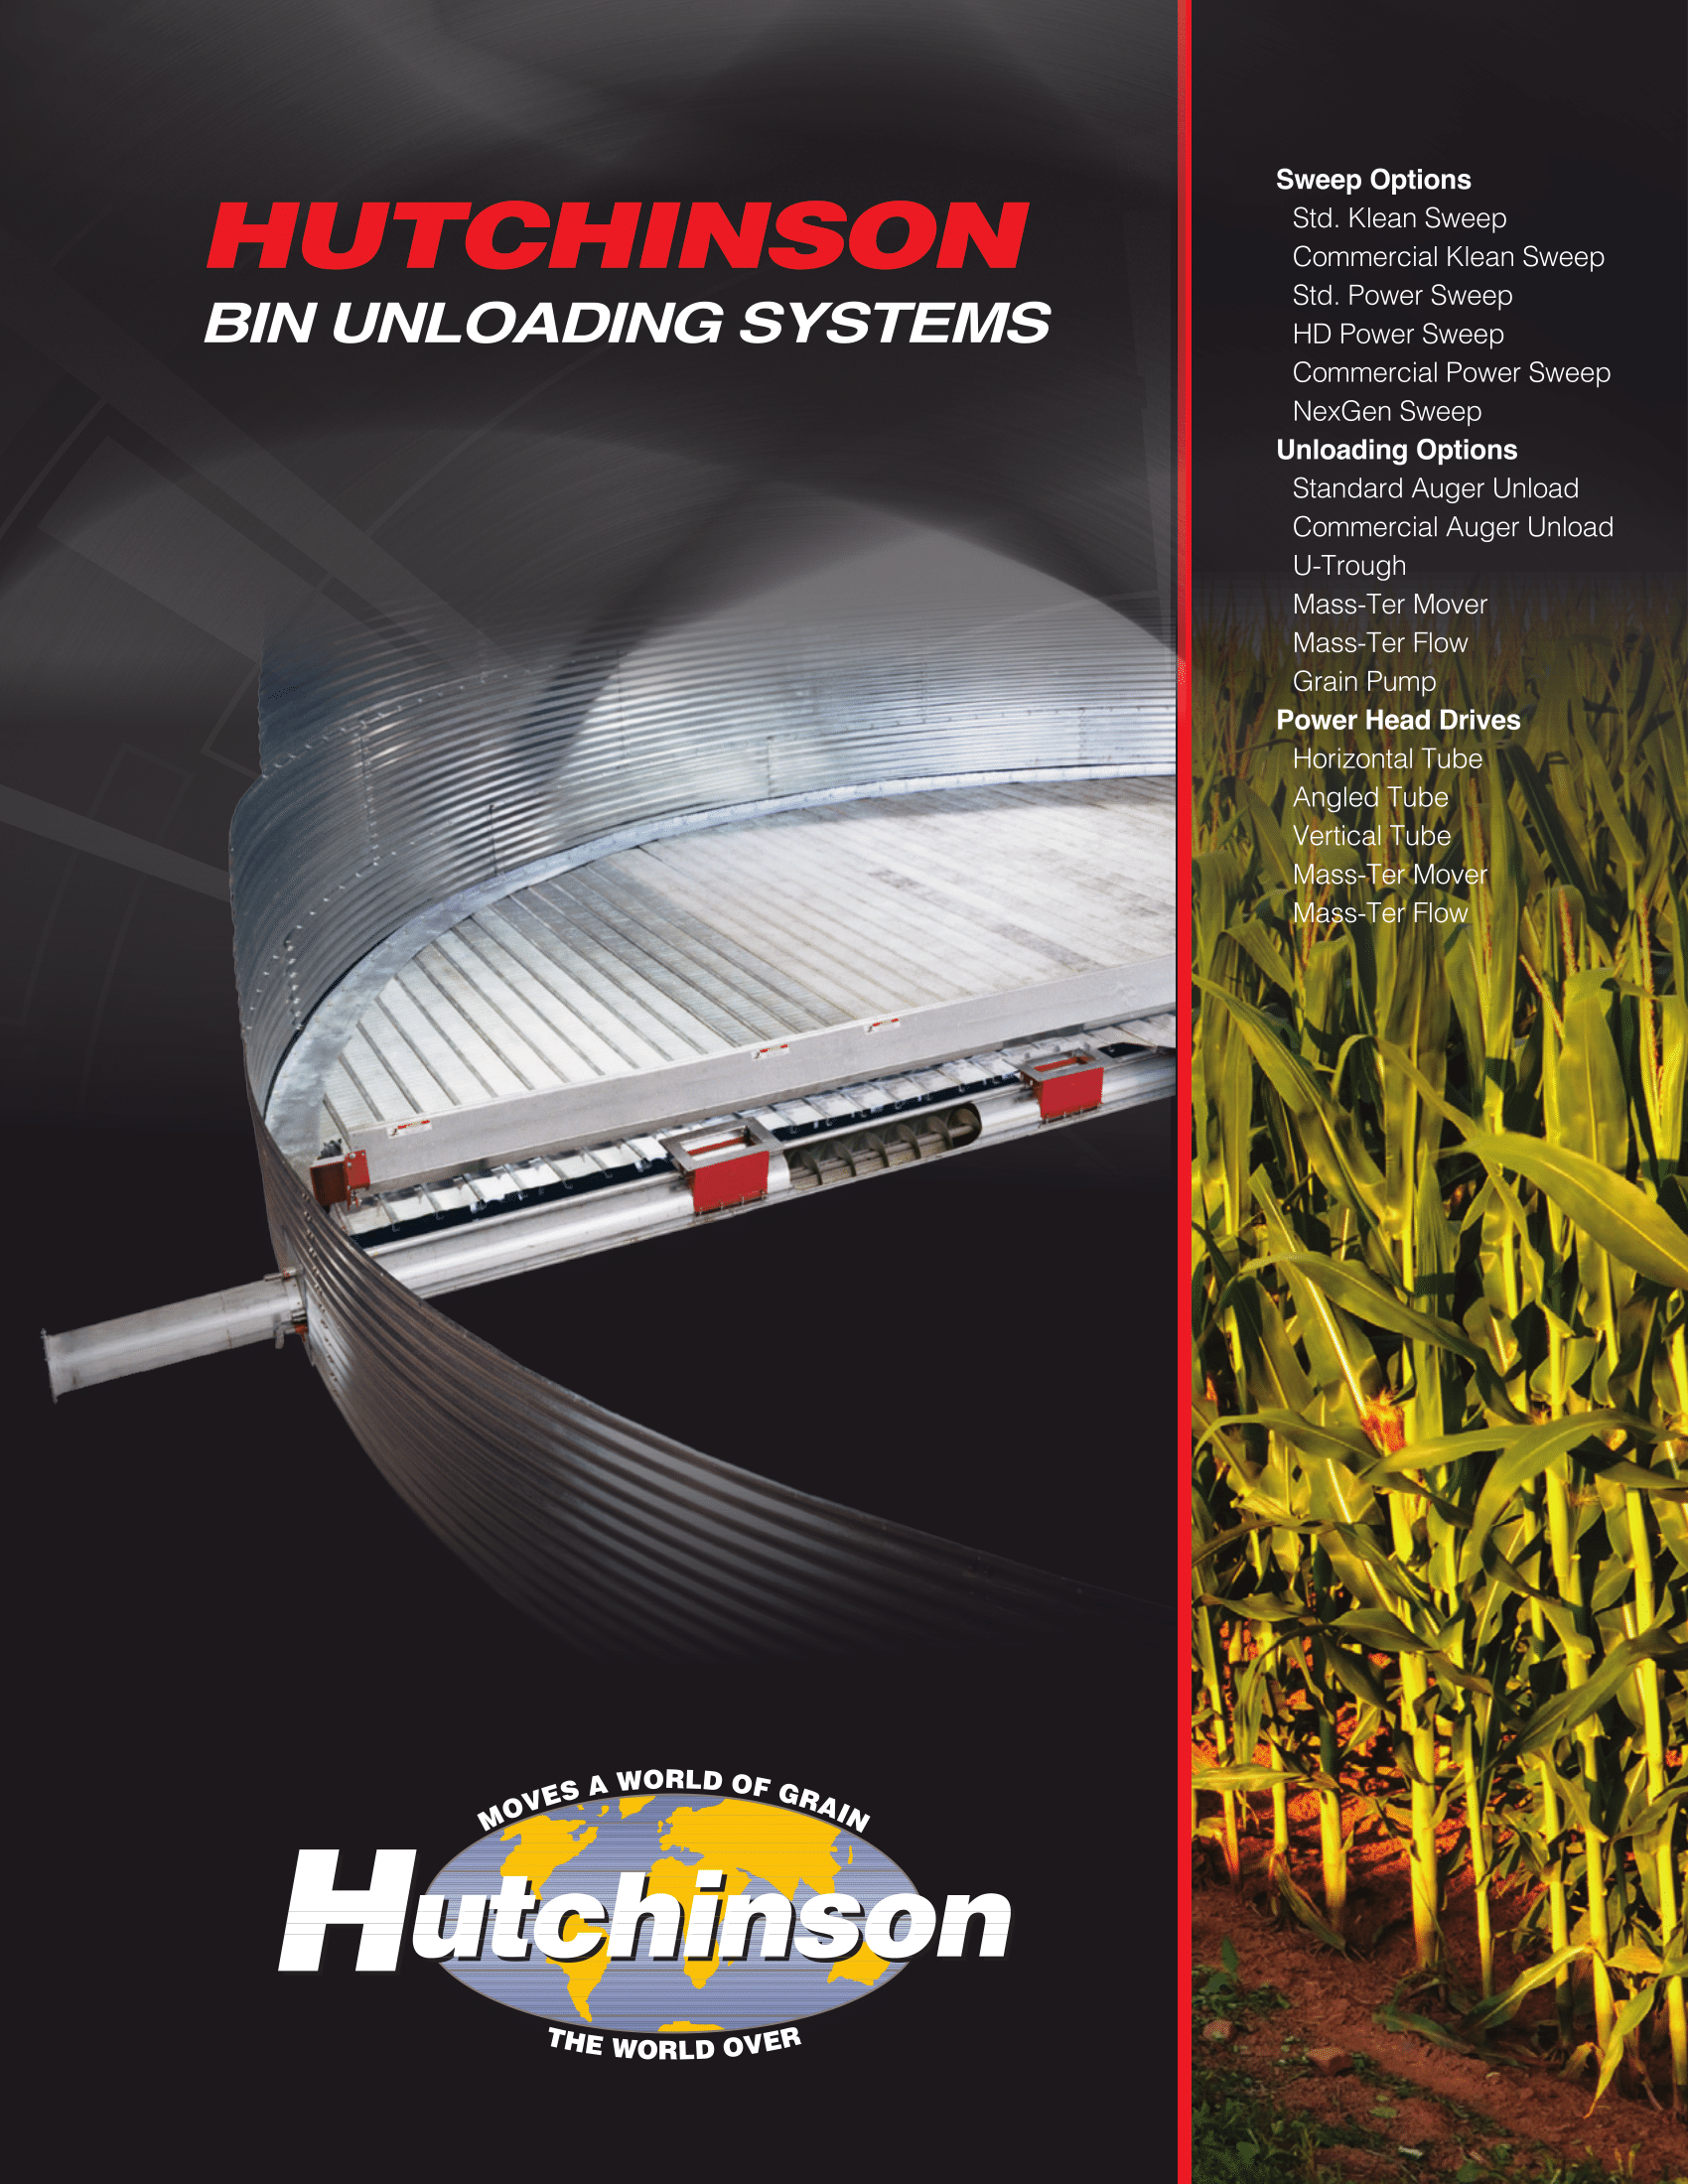 HUTHC Bin-Unloading-Systems-01.png